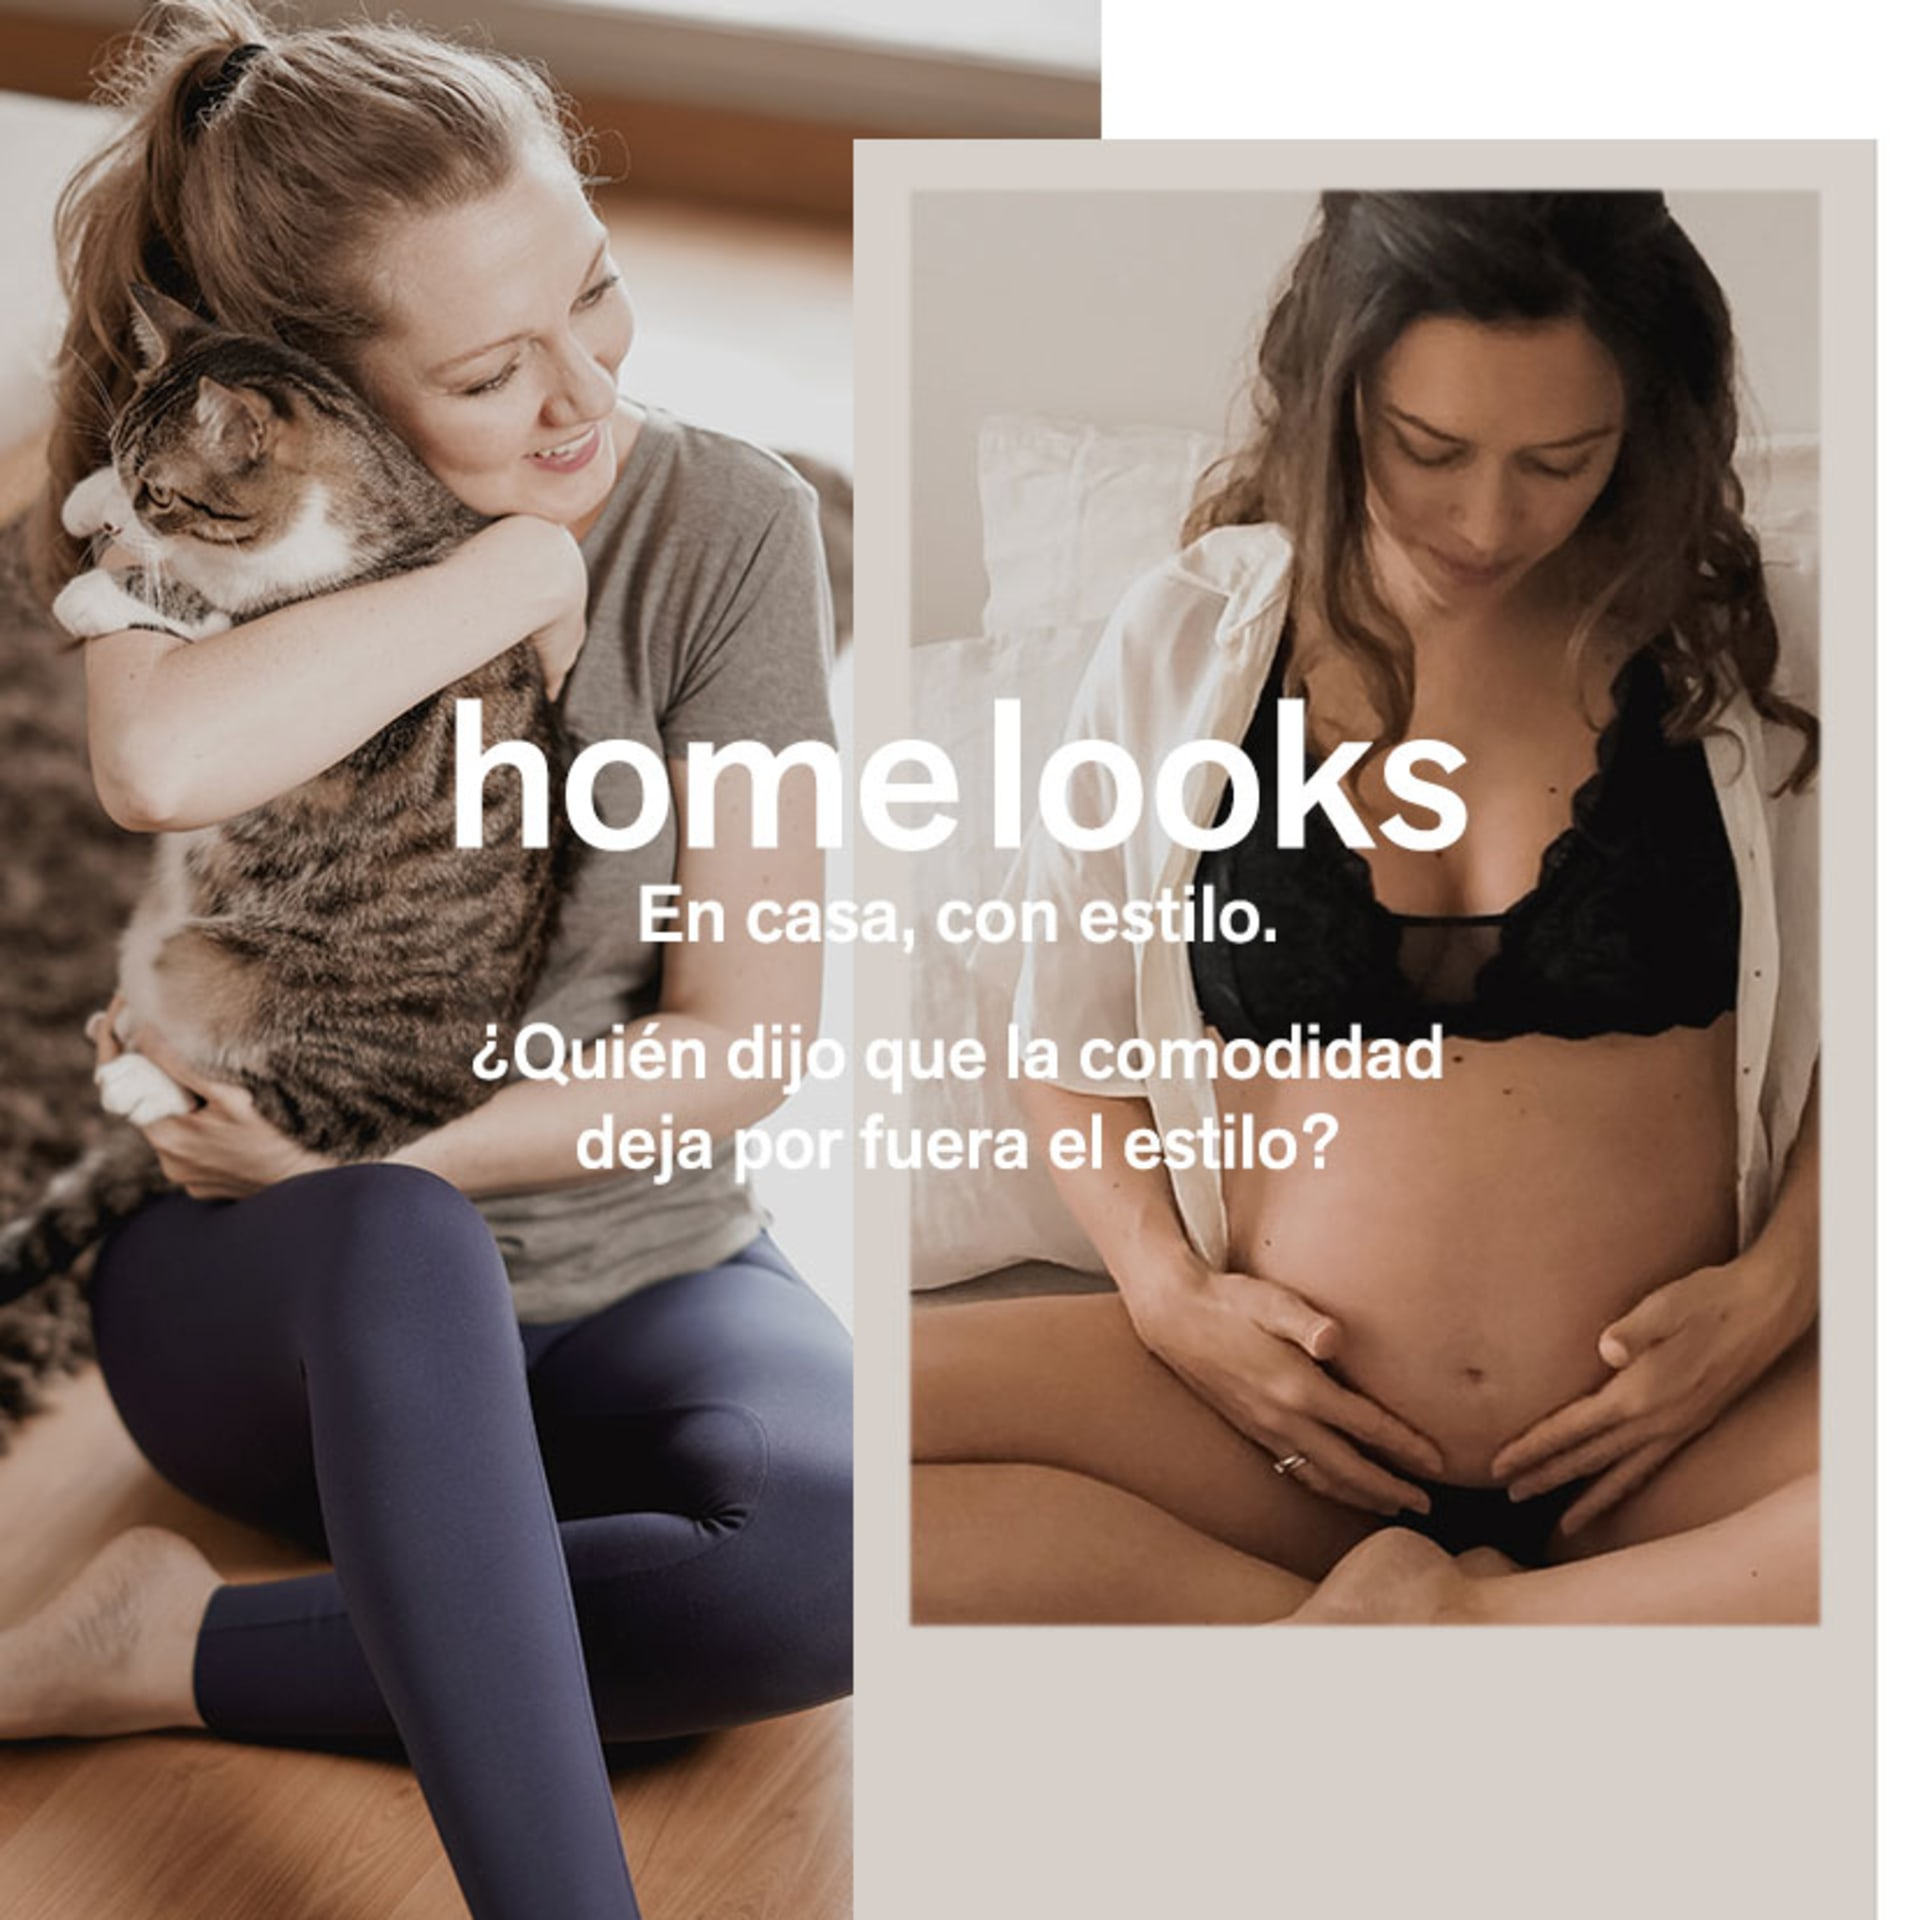 Homelooks